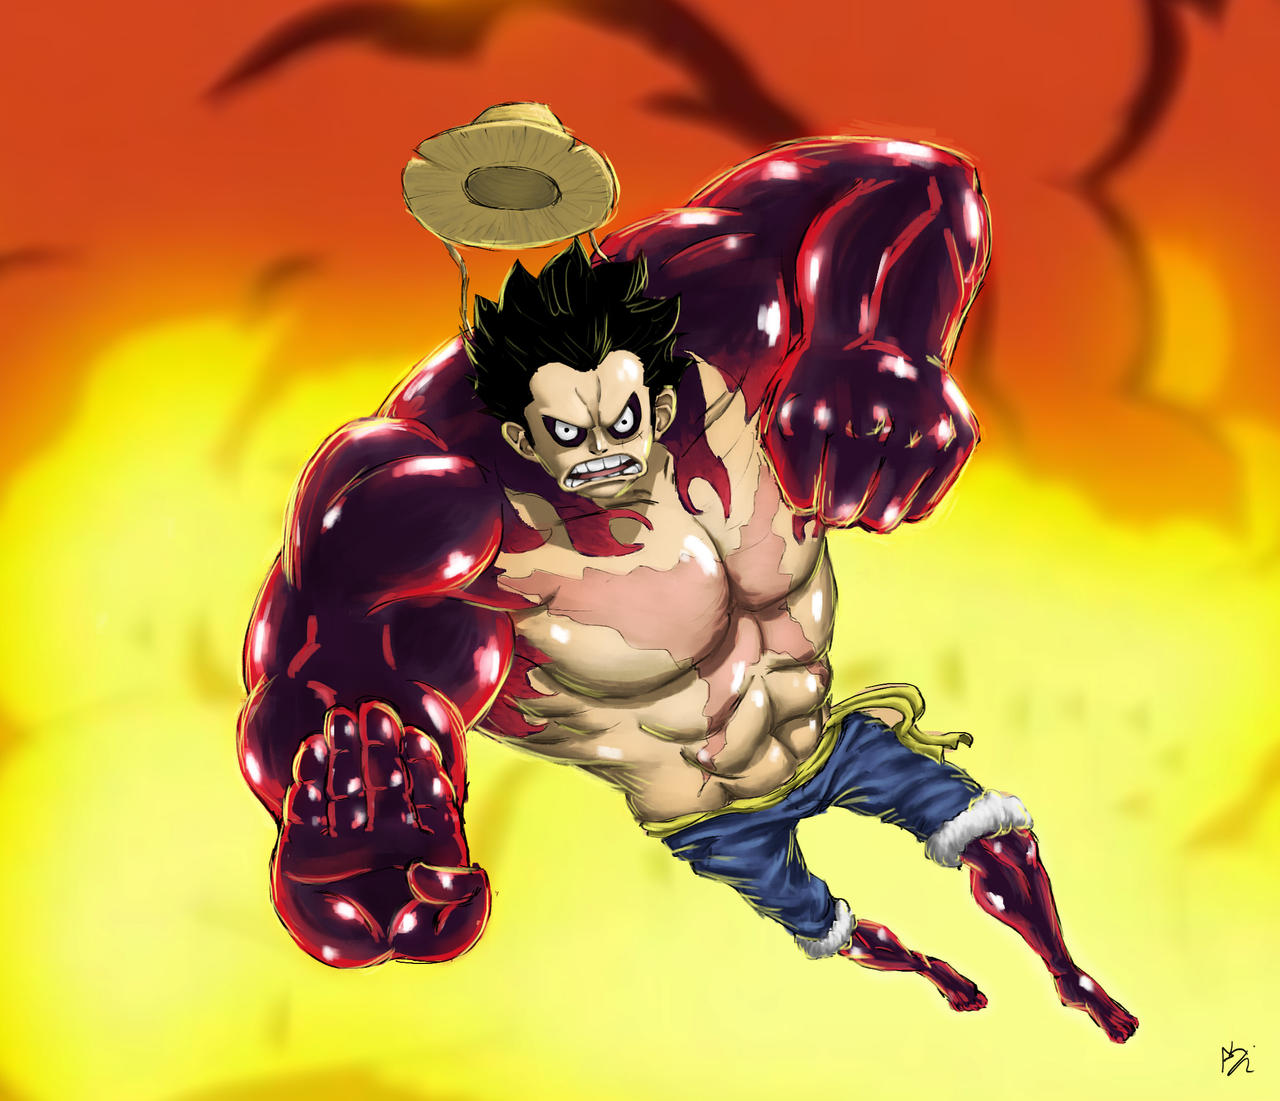 One Piece Fanart Gear 4! By DimitrisKart On DeviantArt